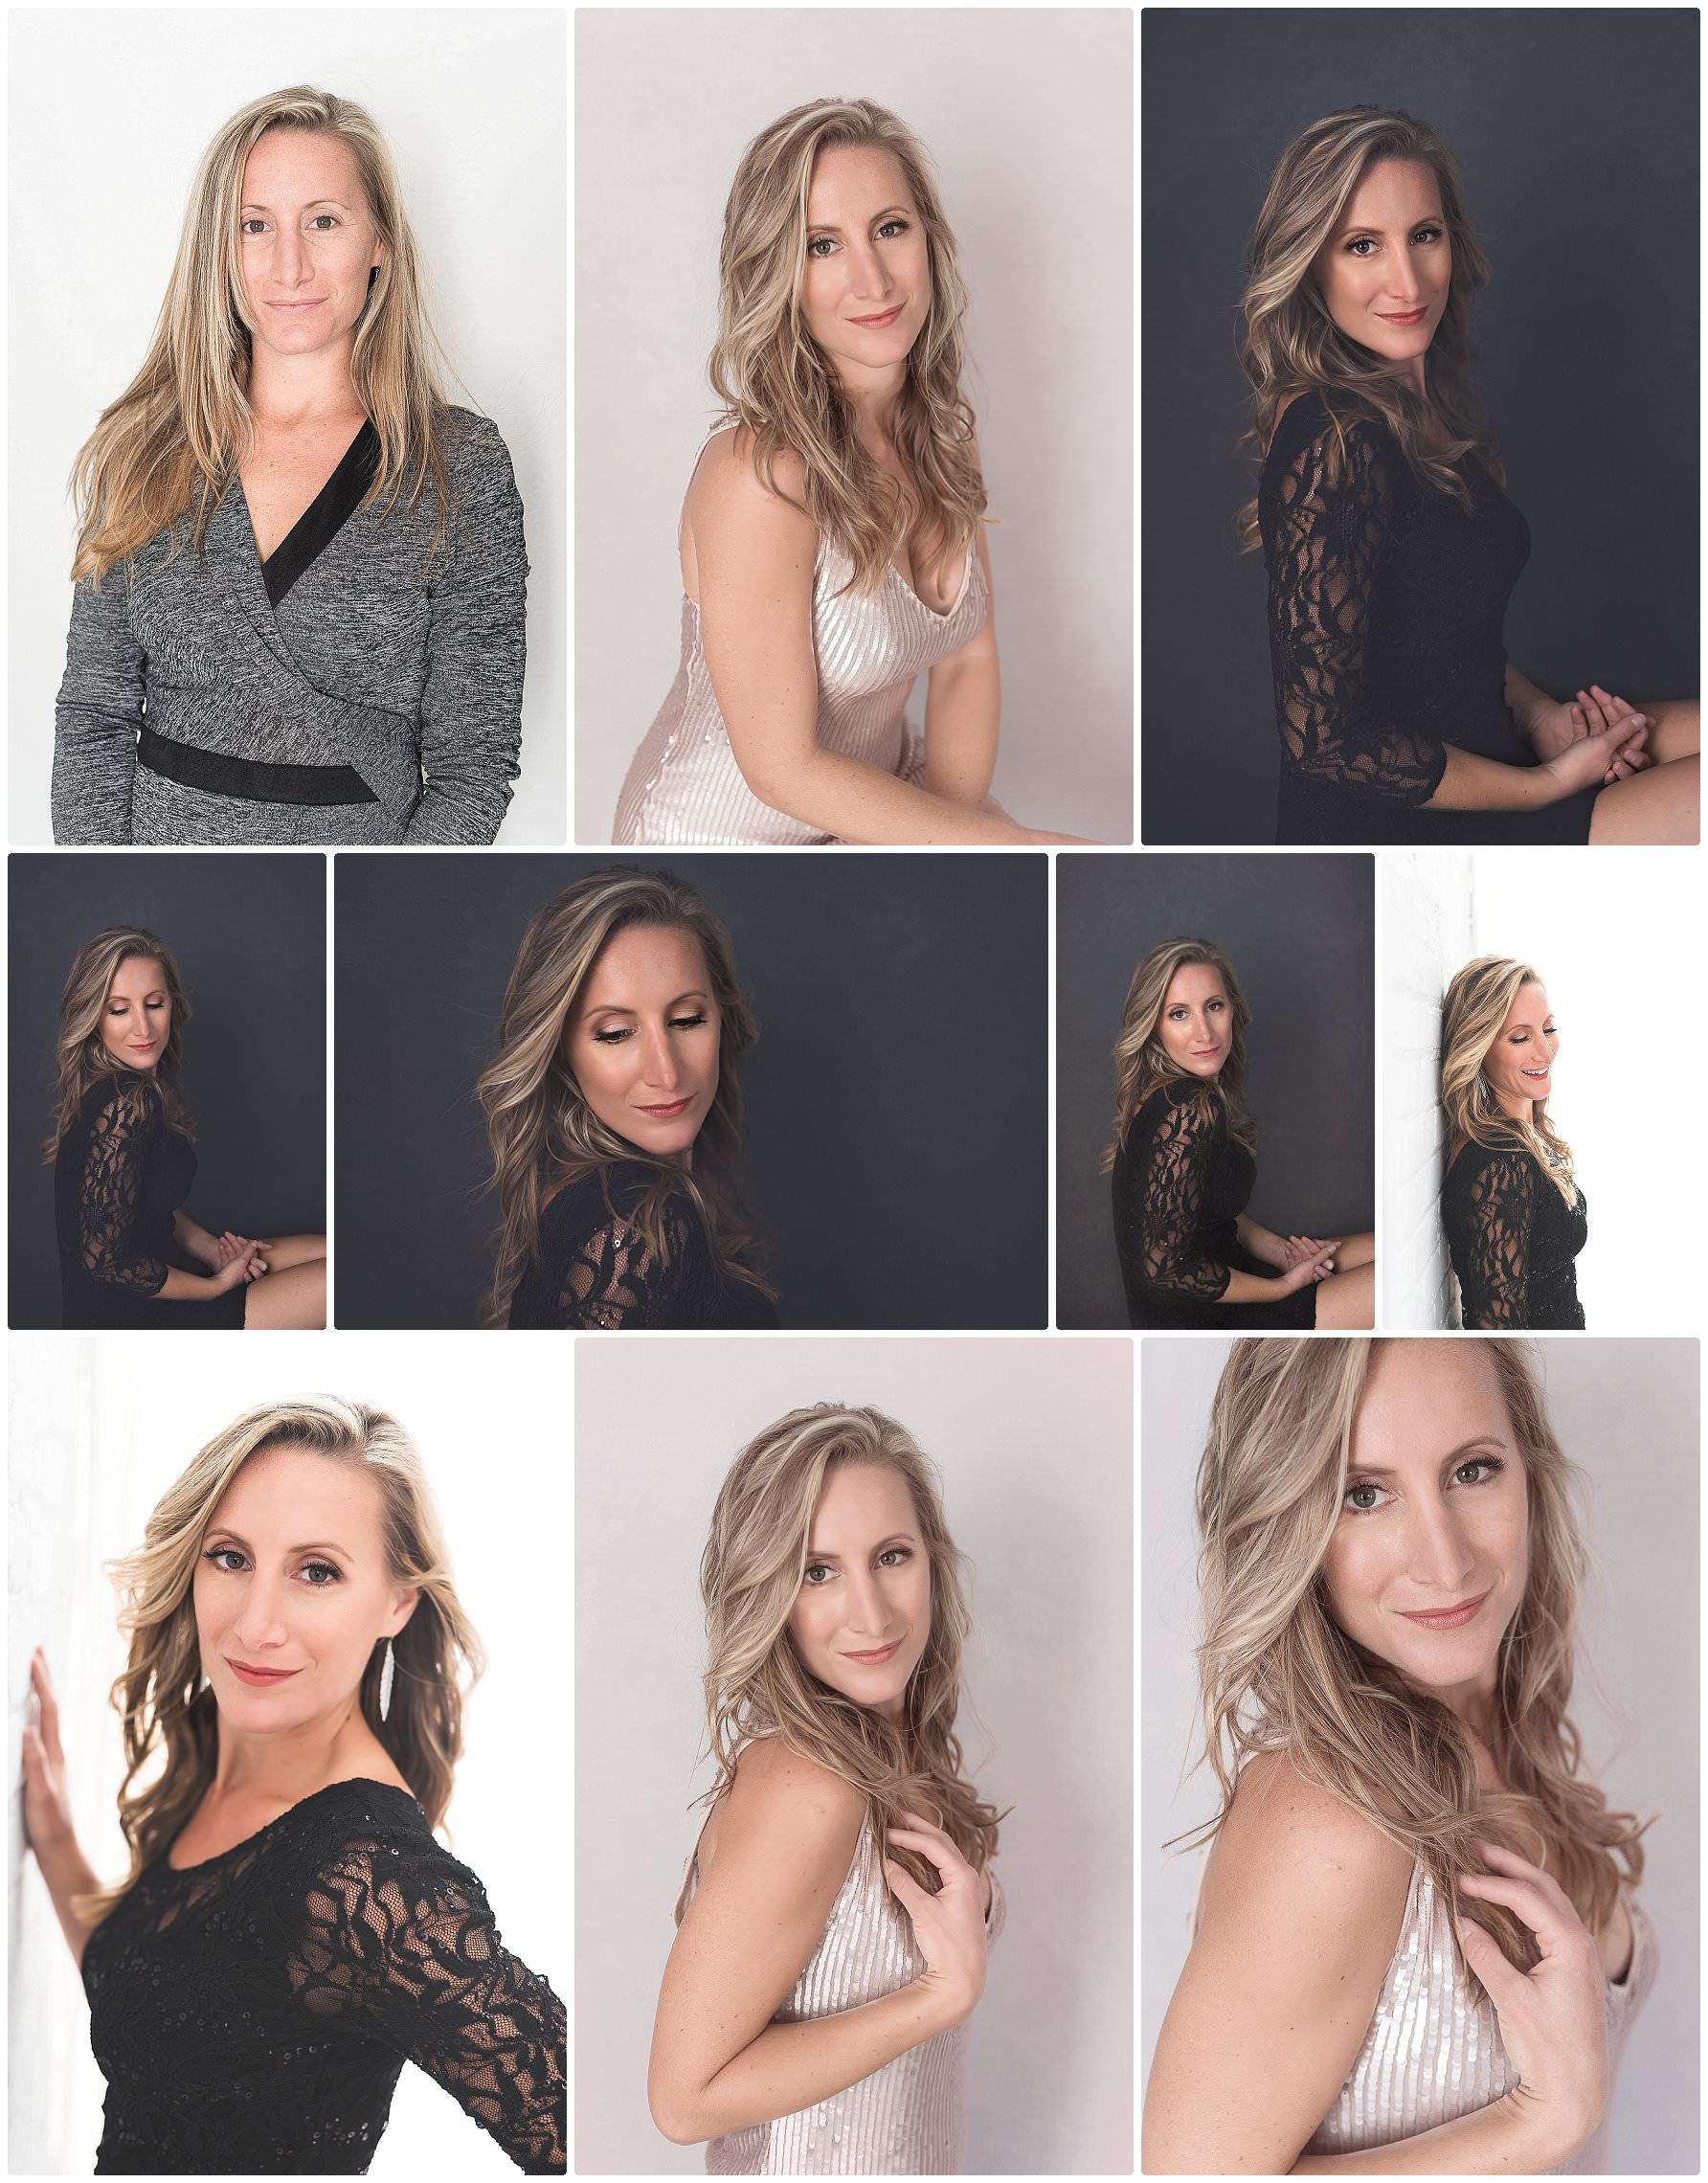 woman having beautiful professional headshots taken in a Tampa Studio